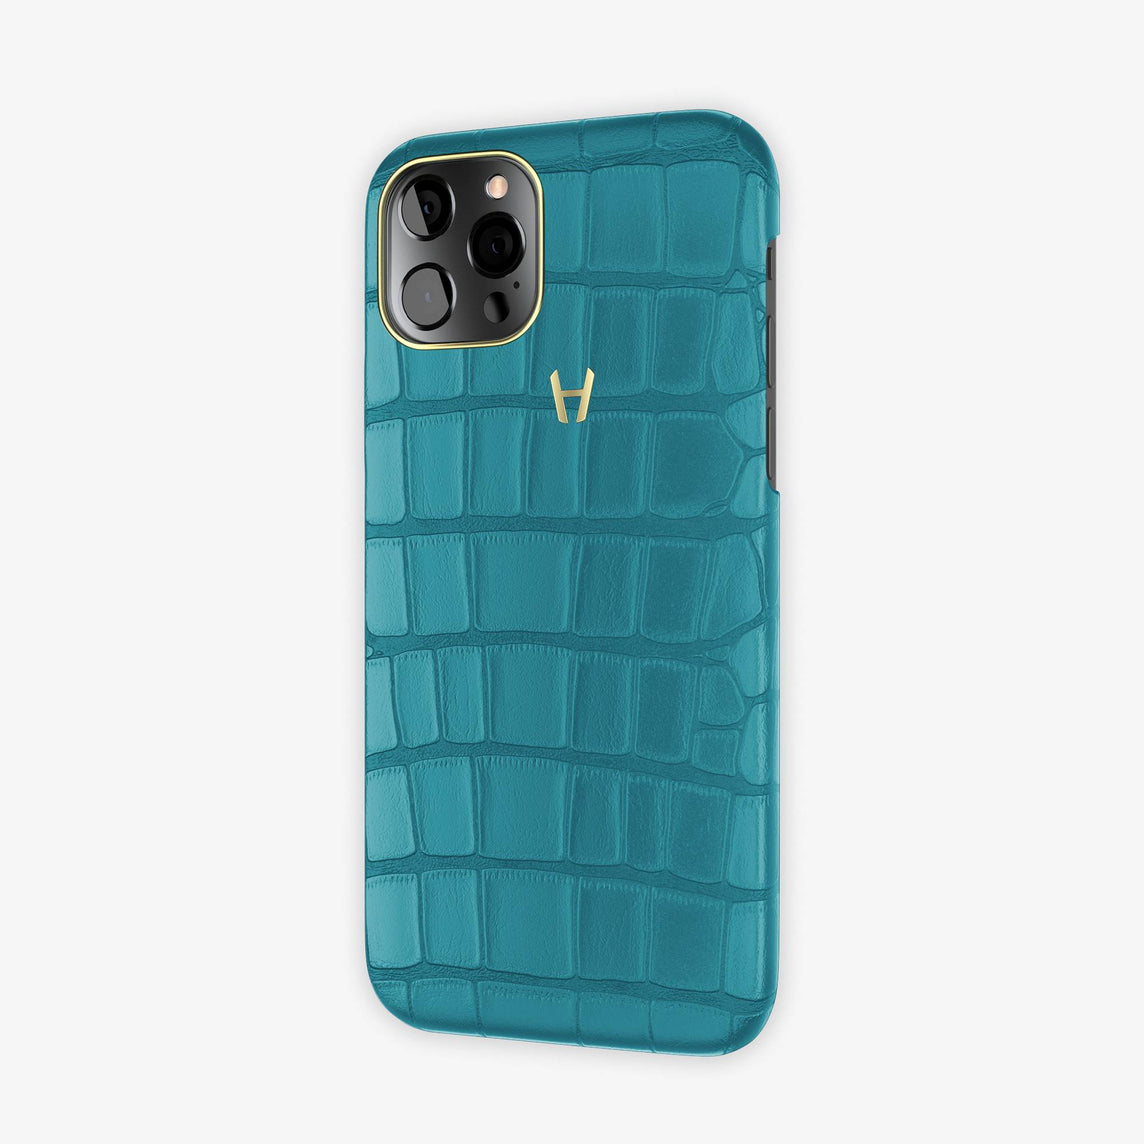 Alligator Case Apple iPhone 12 & iPhone 12 Pro | Teal - Yellow Gold